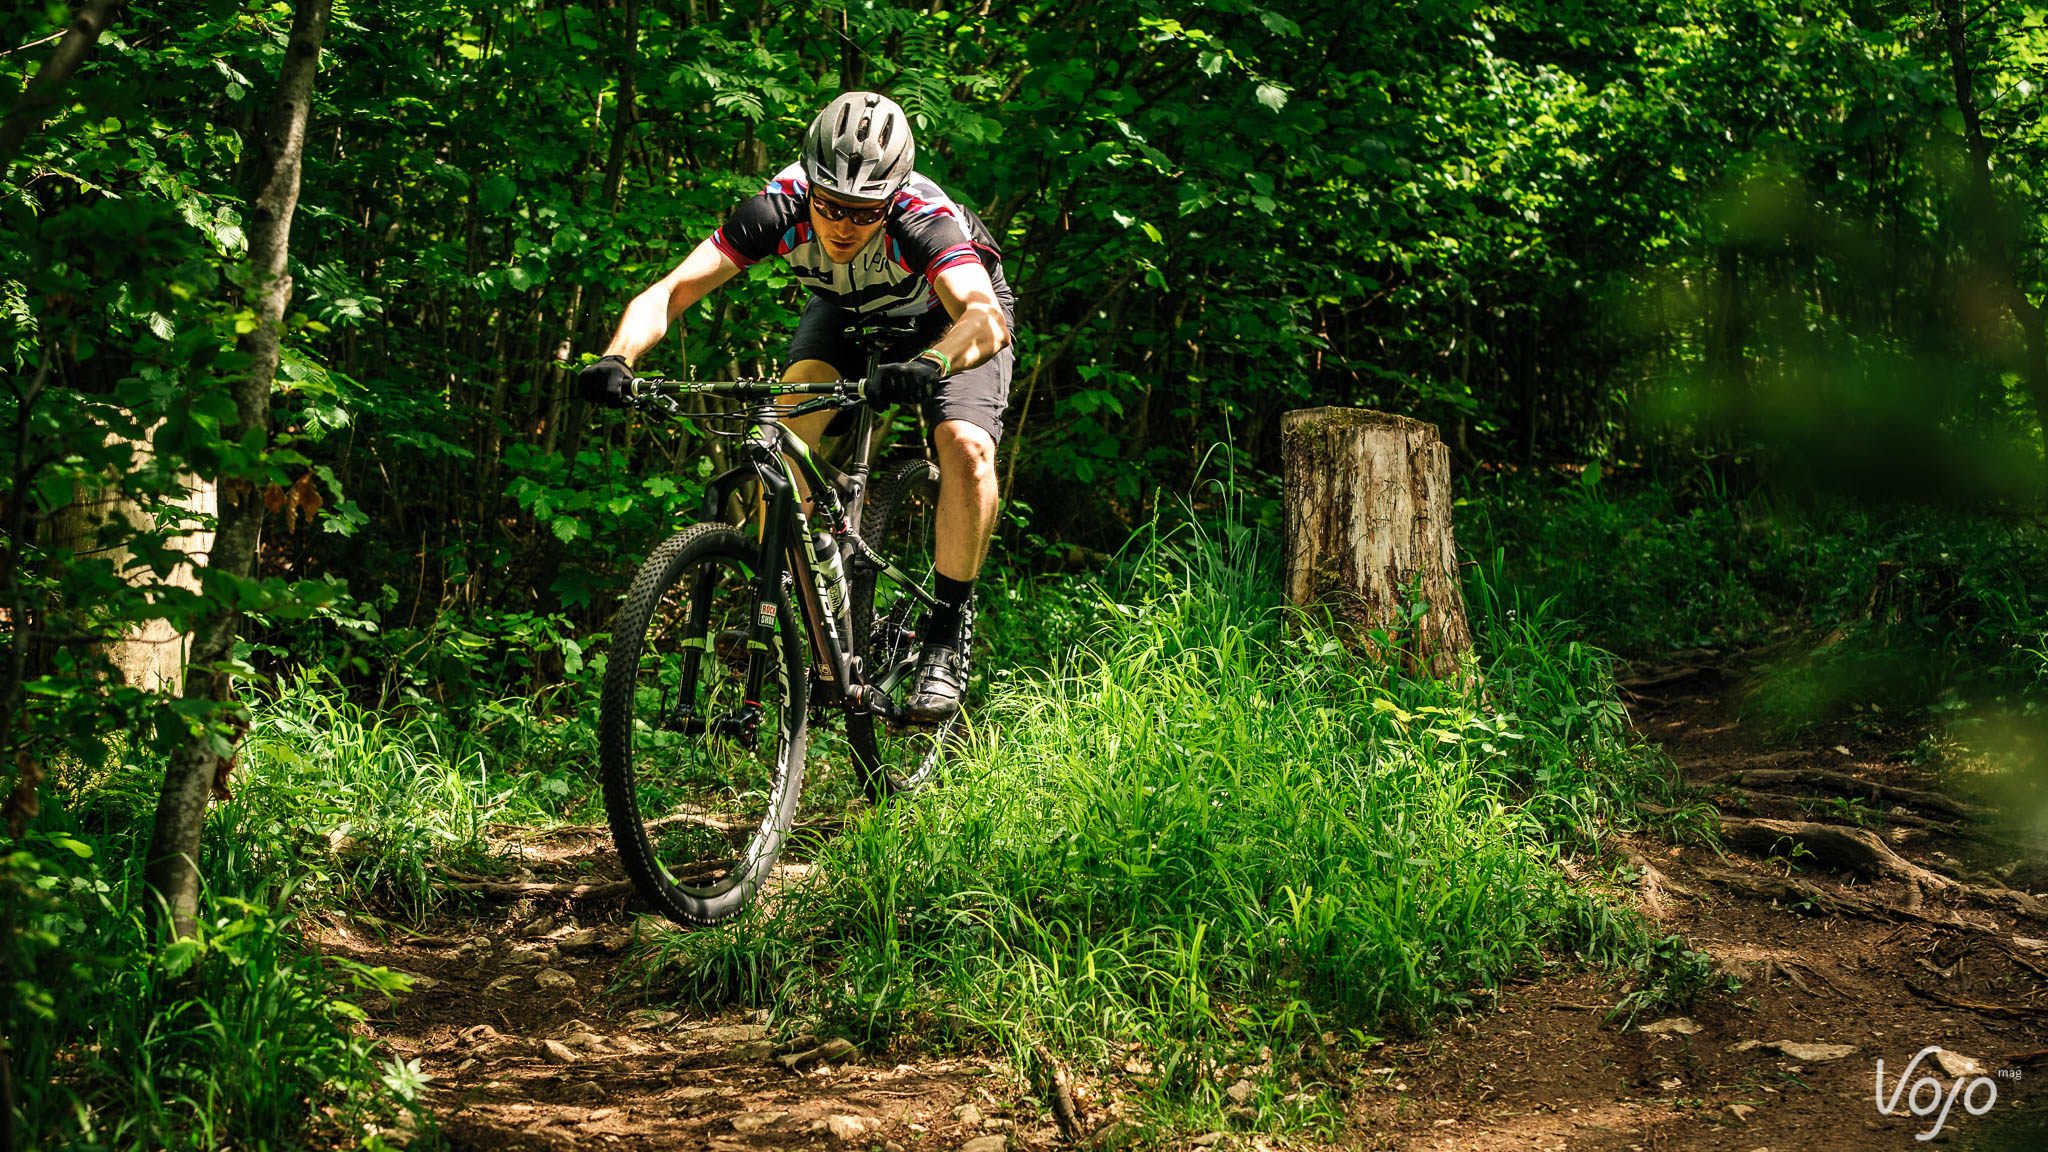 Merida_96_nouveaute_2016_Action_test_Copyright_MTBCult_OBeart_VojoMag-2